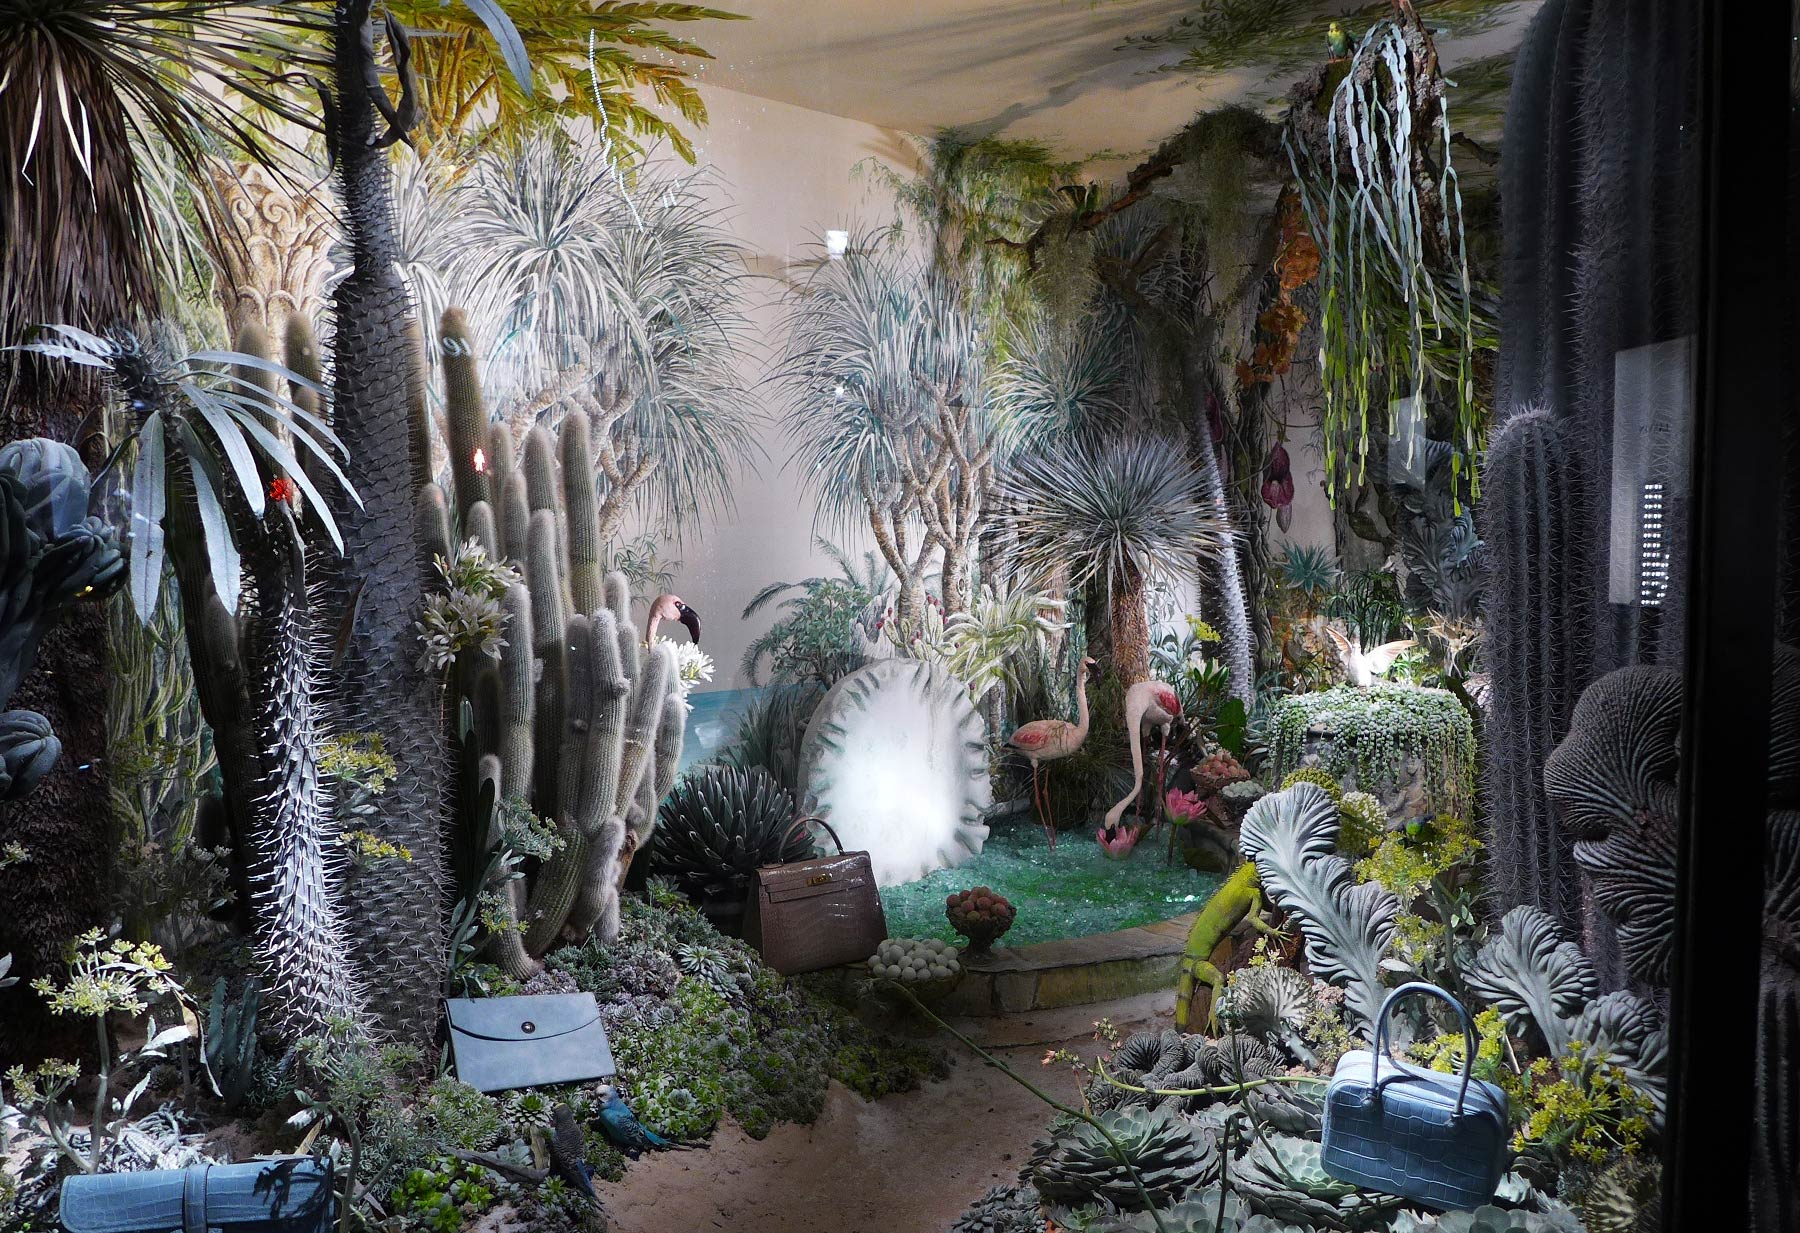 Displays inspired by nature composed by many little pieces. It looks like an exotic landscape.